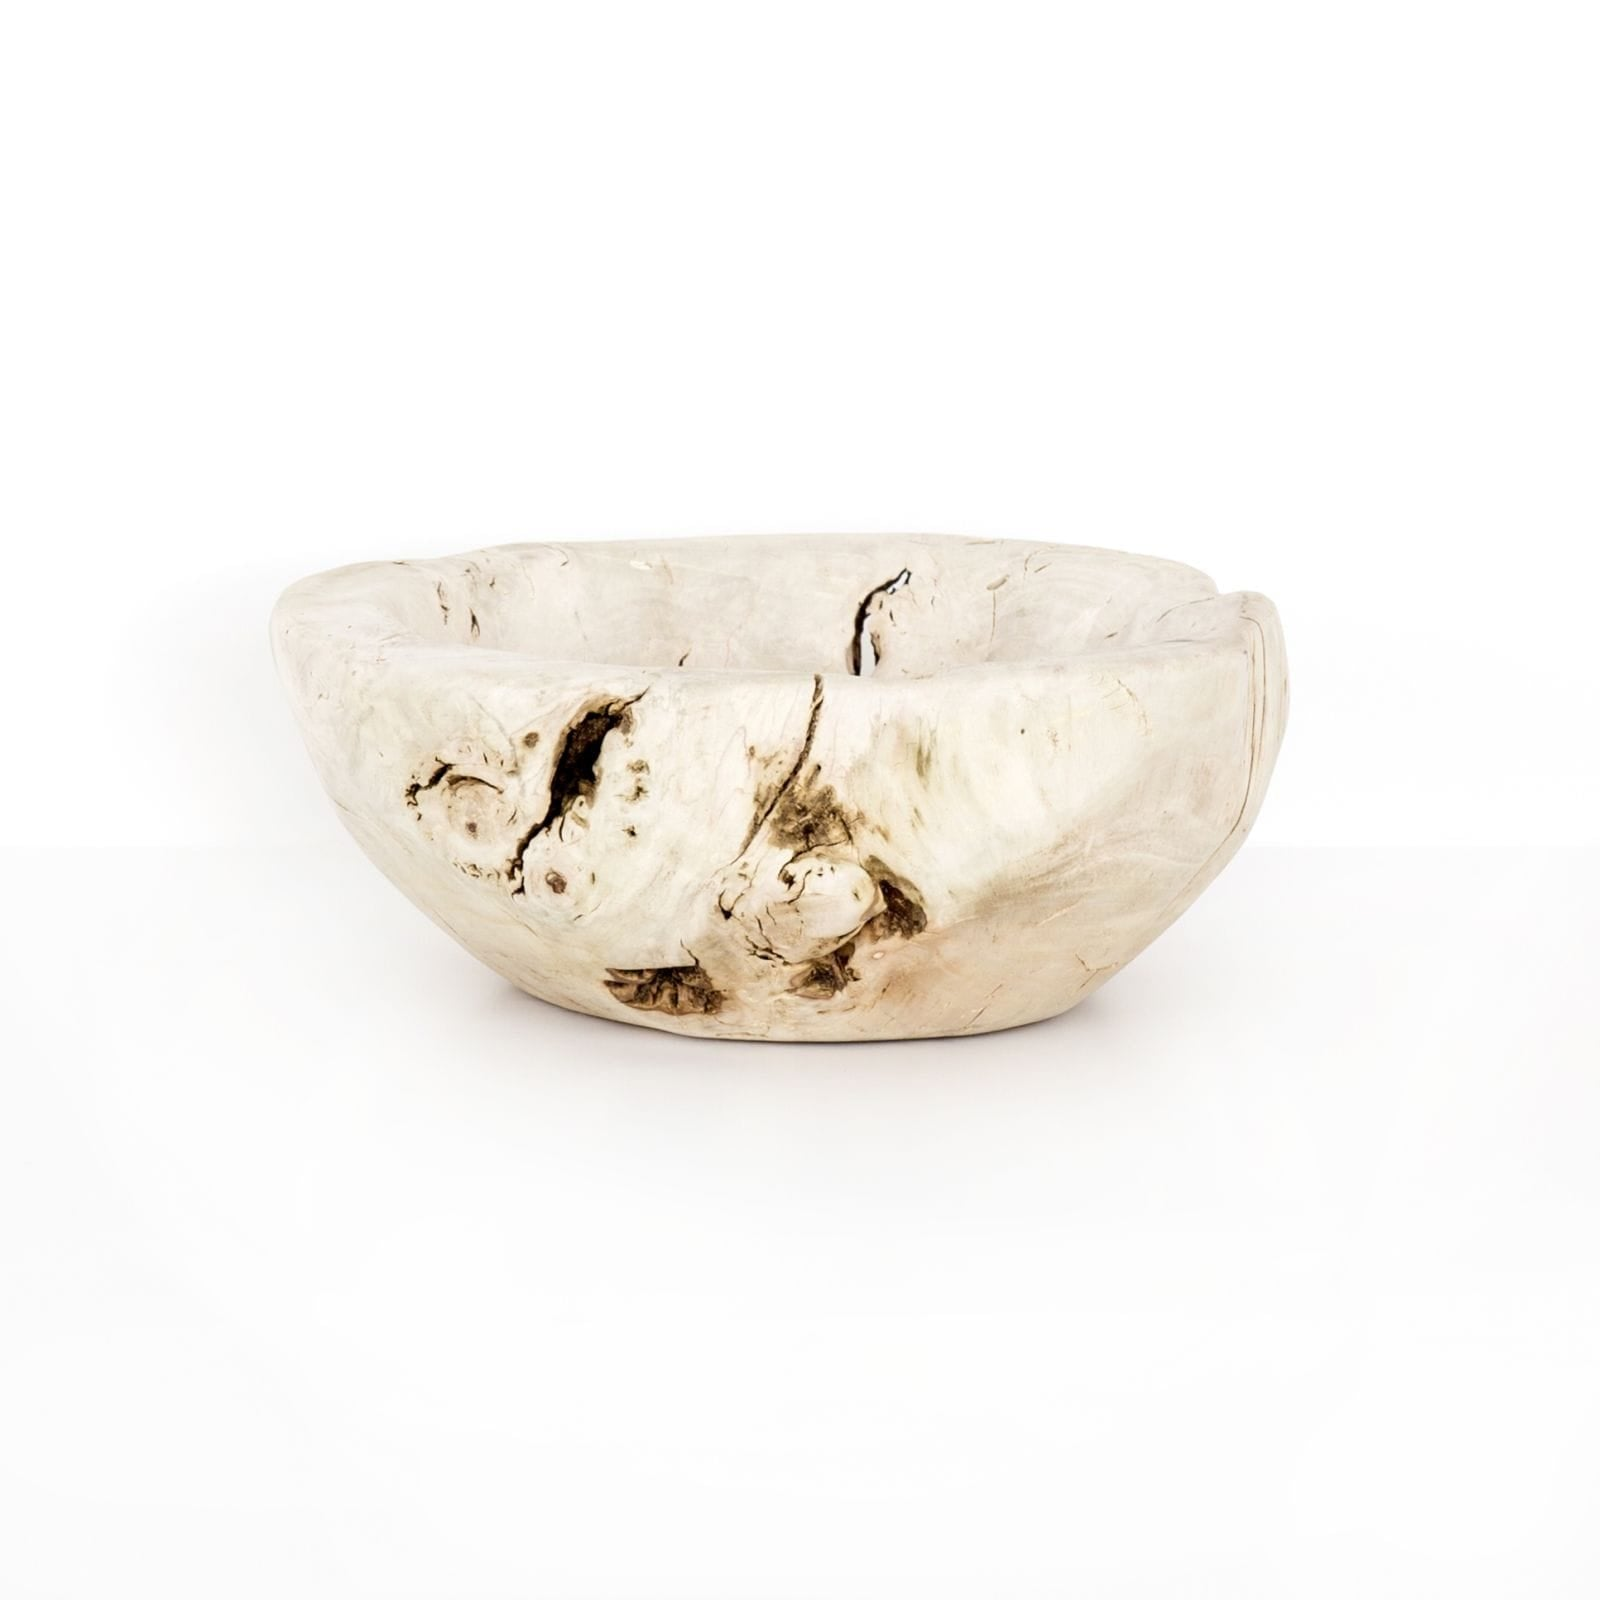 Four Hands Four Hands Reclaimed Wood Bowl - Ivory UWES-189